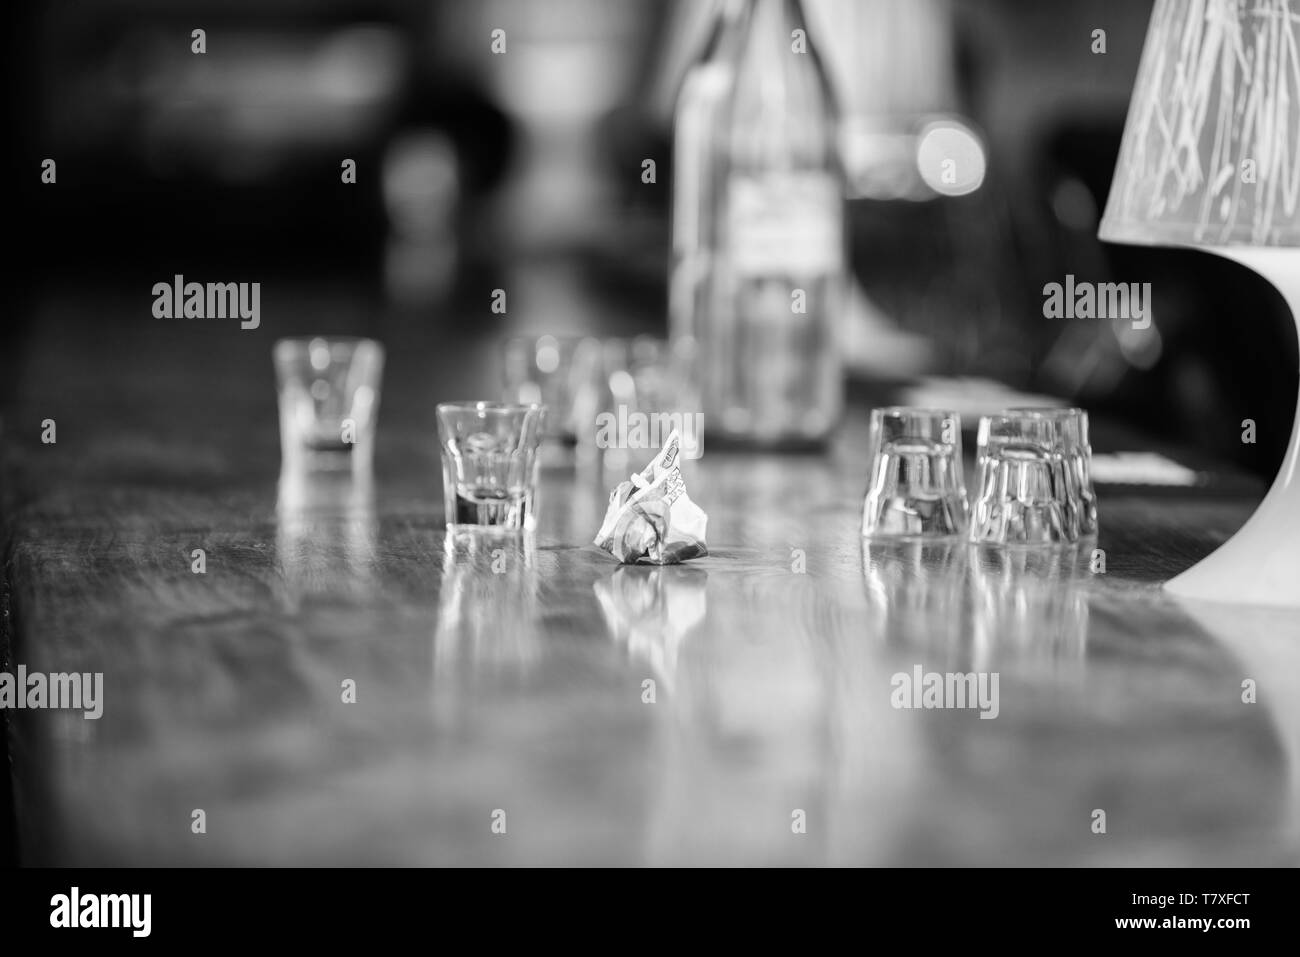 Purchase and payment. Cash money concept. Leave tips for bartender. Tip given to waiter. Crumpled money cash at bar counter. Empty glasses and bottle on table. Cash payment. Ordering drinks in bar. - Stock Image